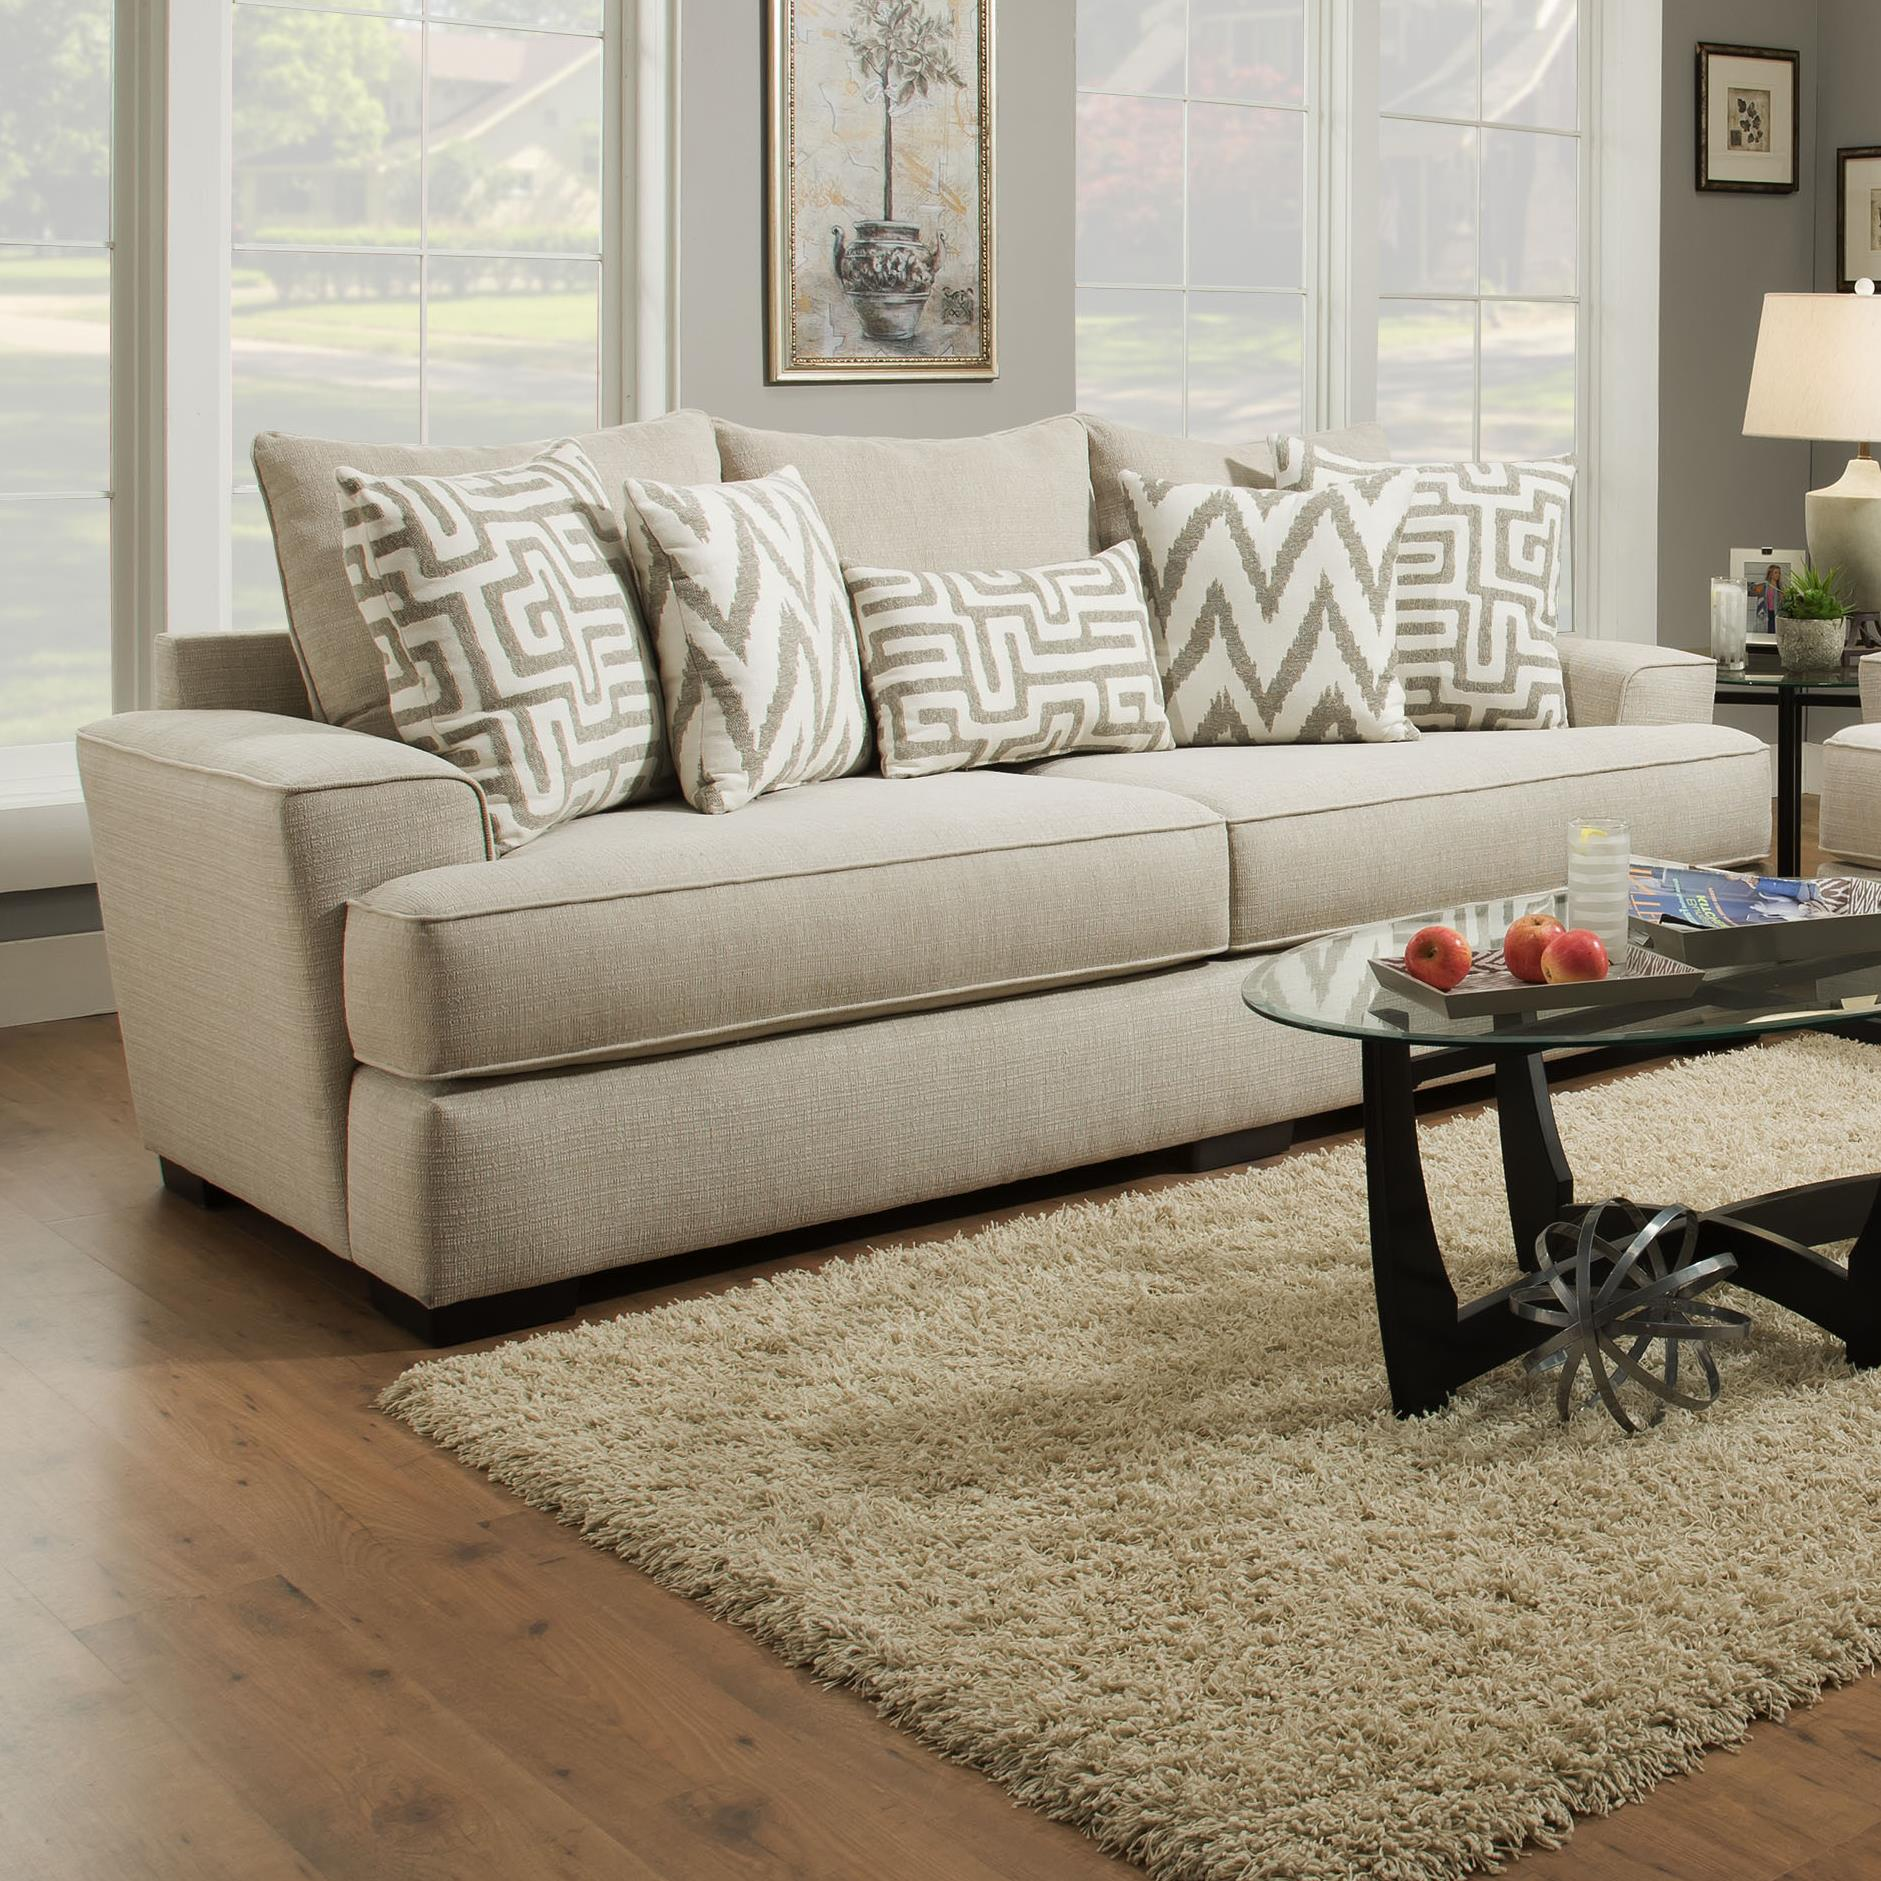 8642 transitional sectional sofa with chaise by albany bed linens simmons upholstery pewter